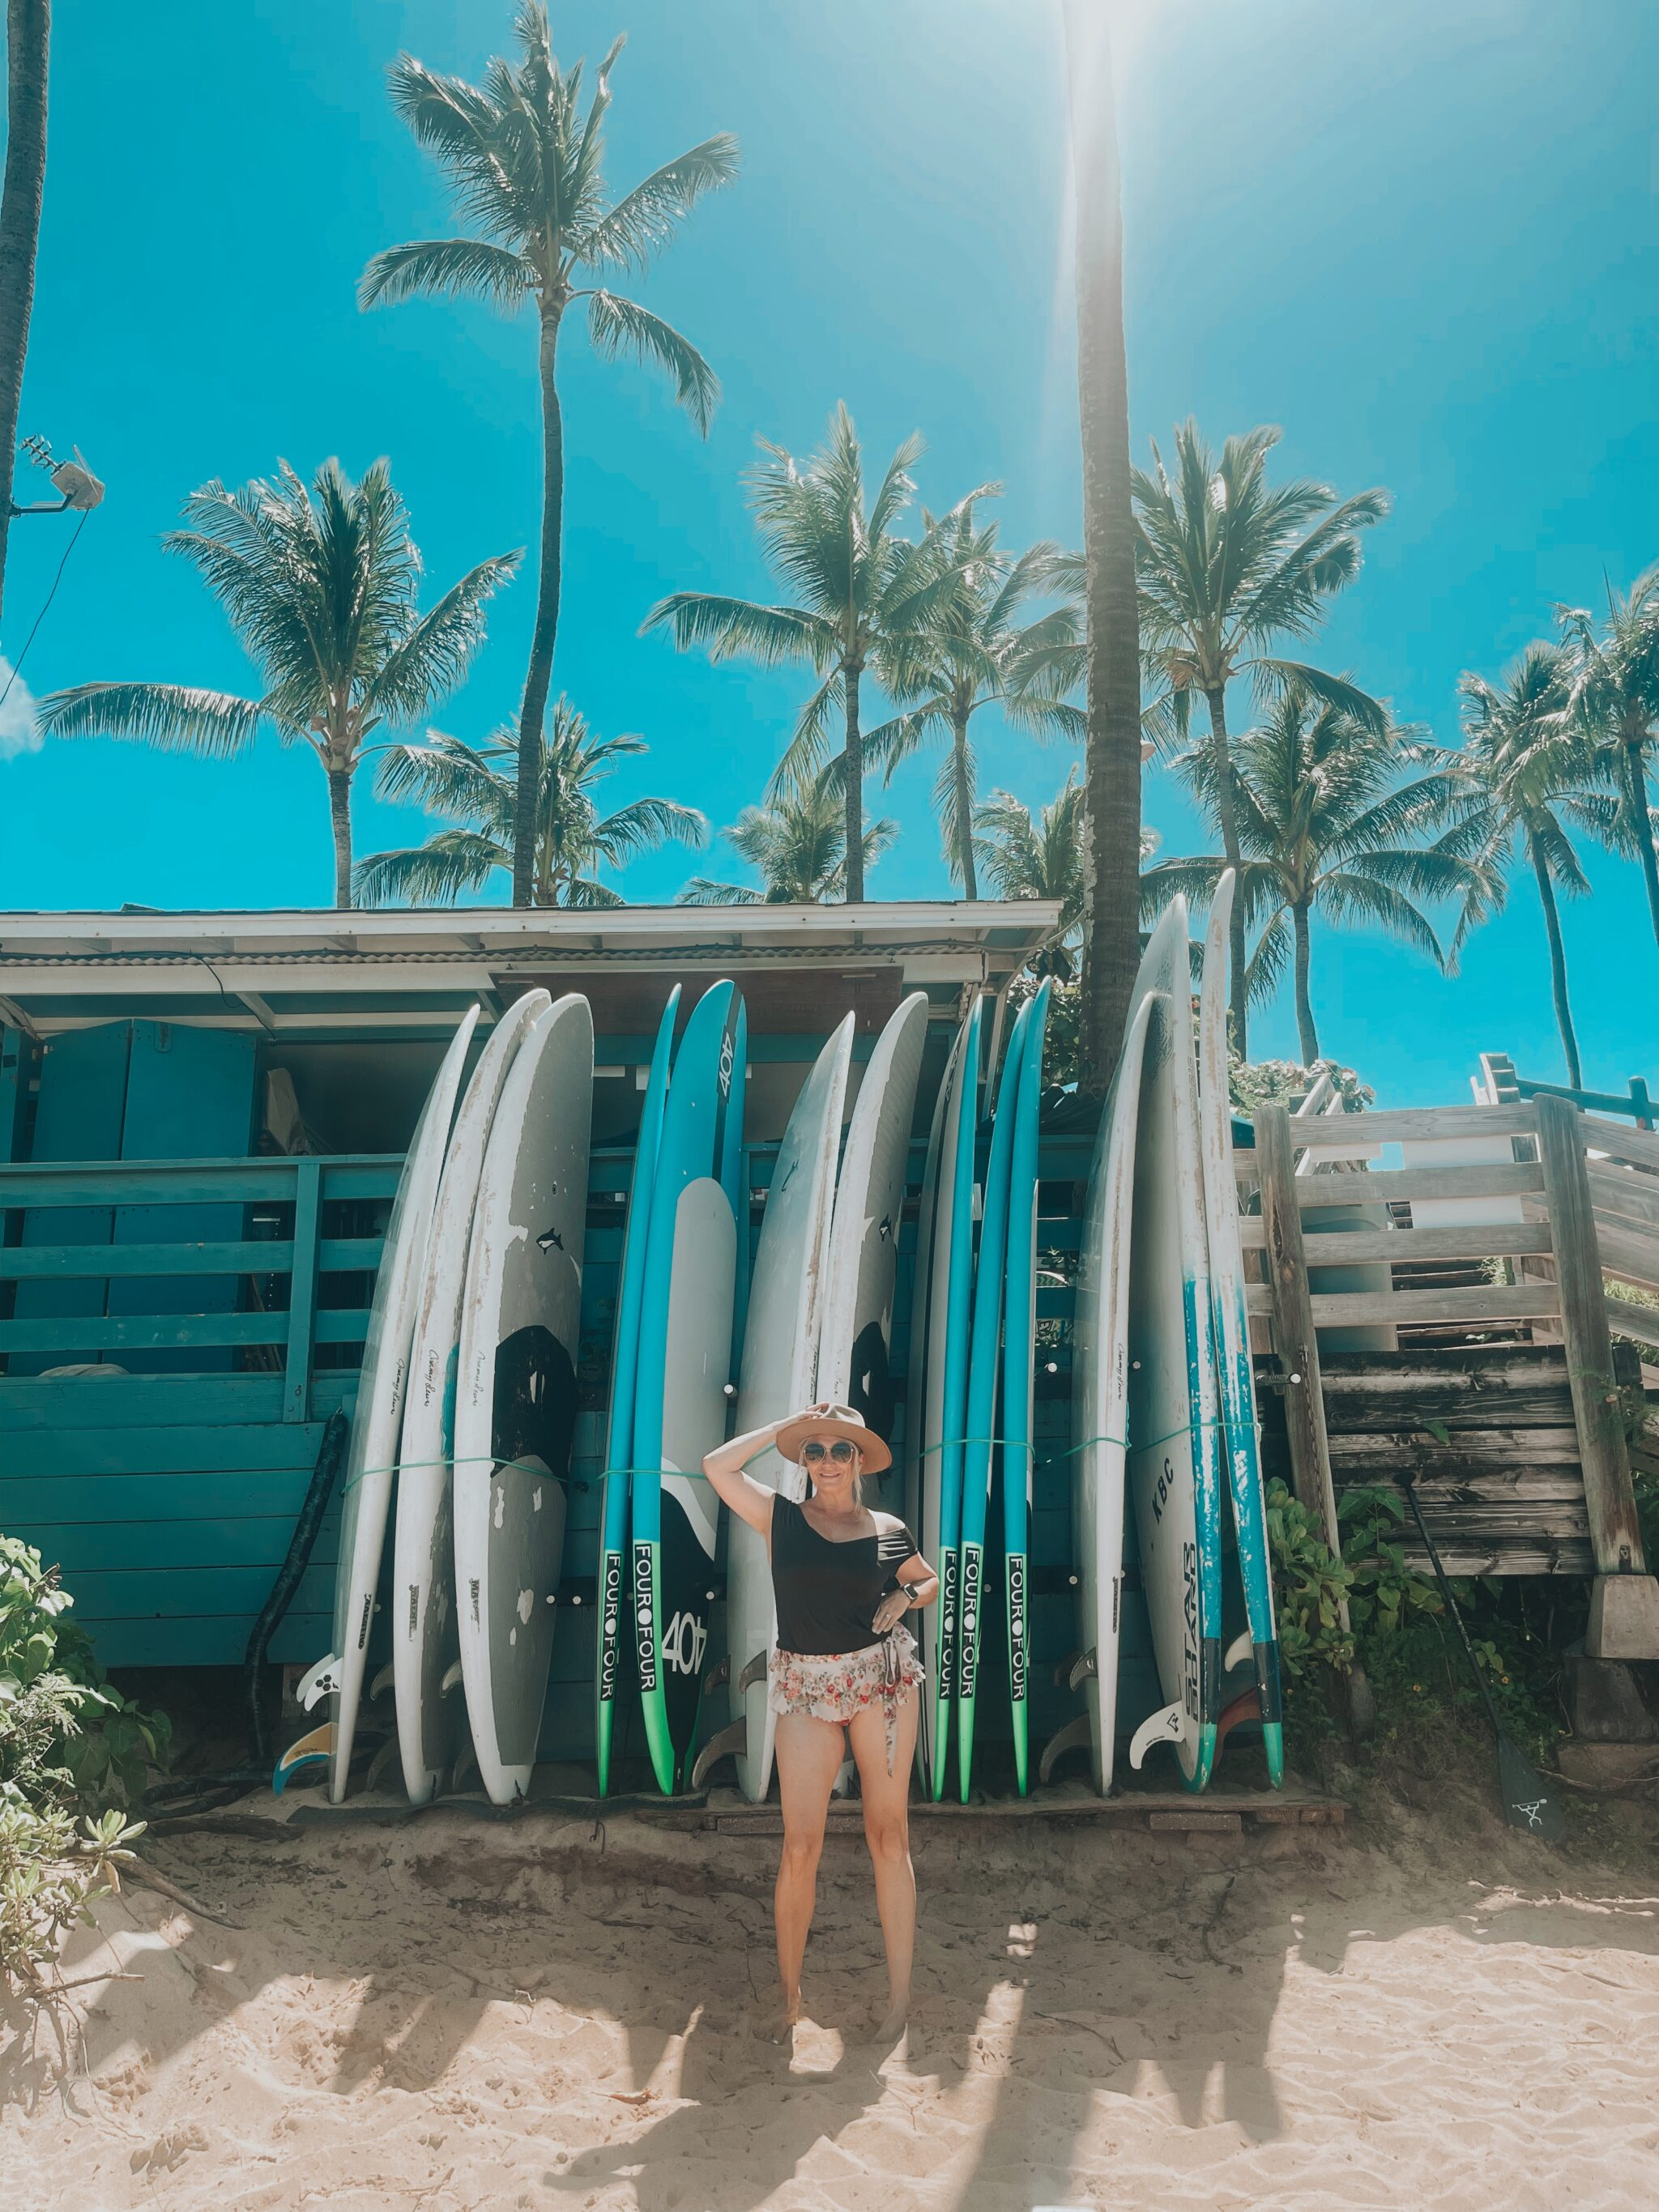 woman by surfboards